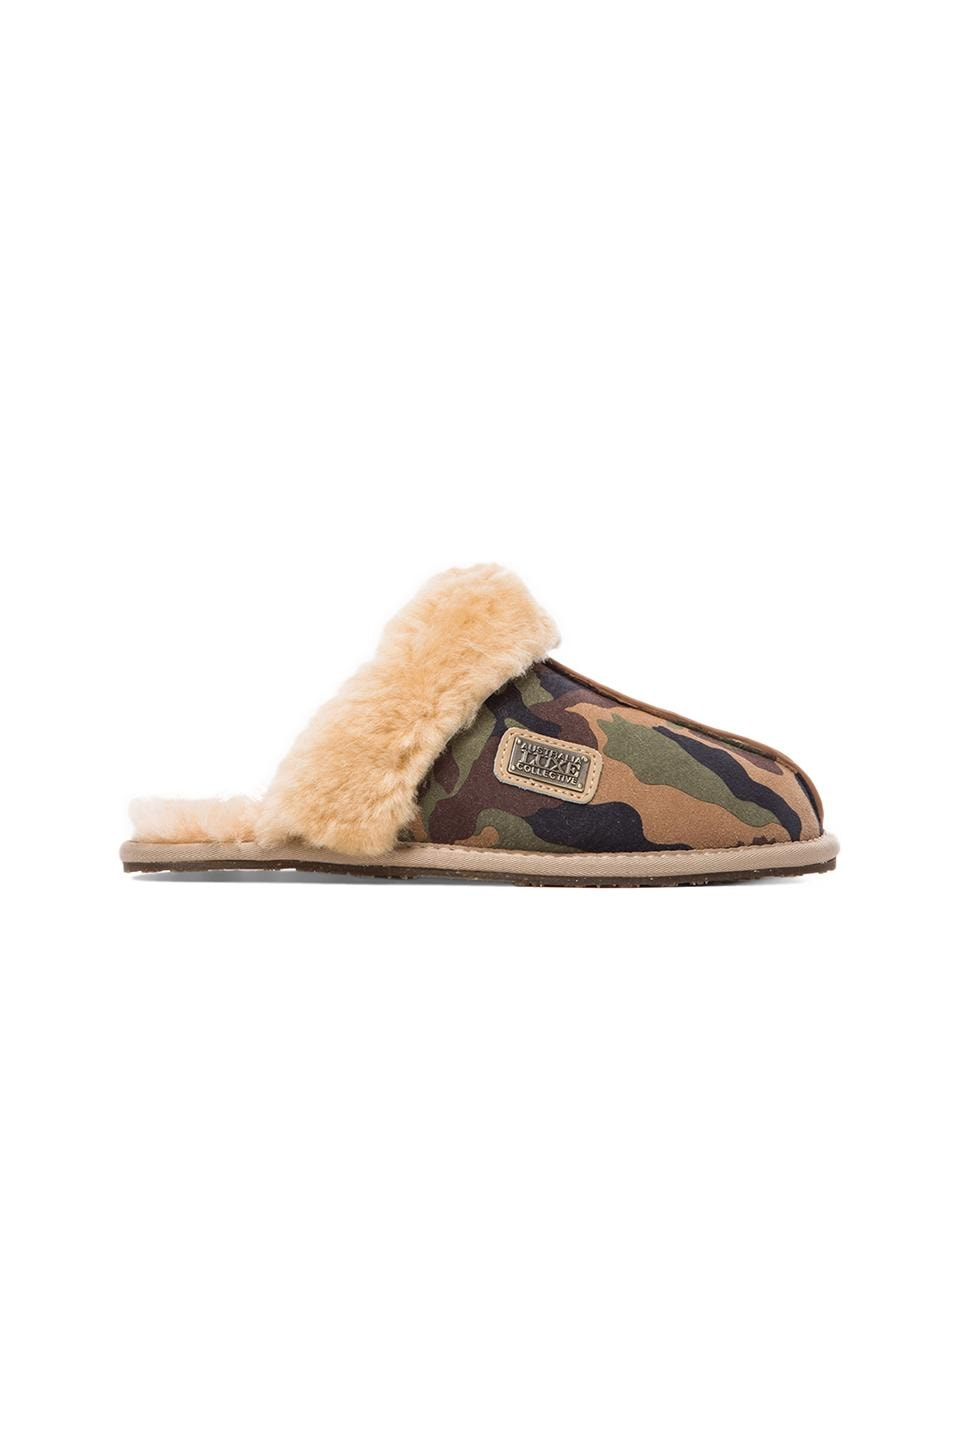 Australia Luxe Collective Closed Mule with Sheepskin in Camo